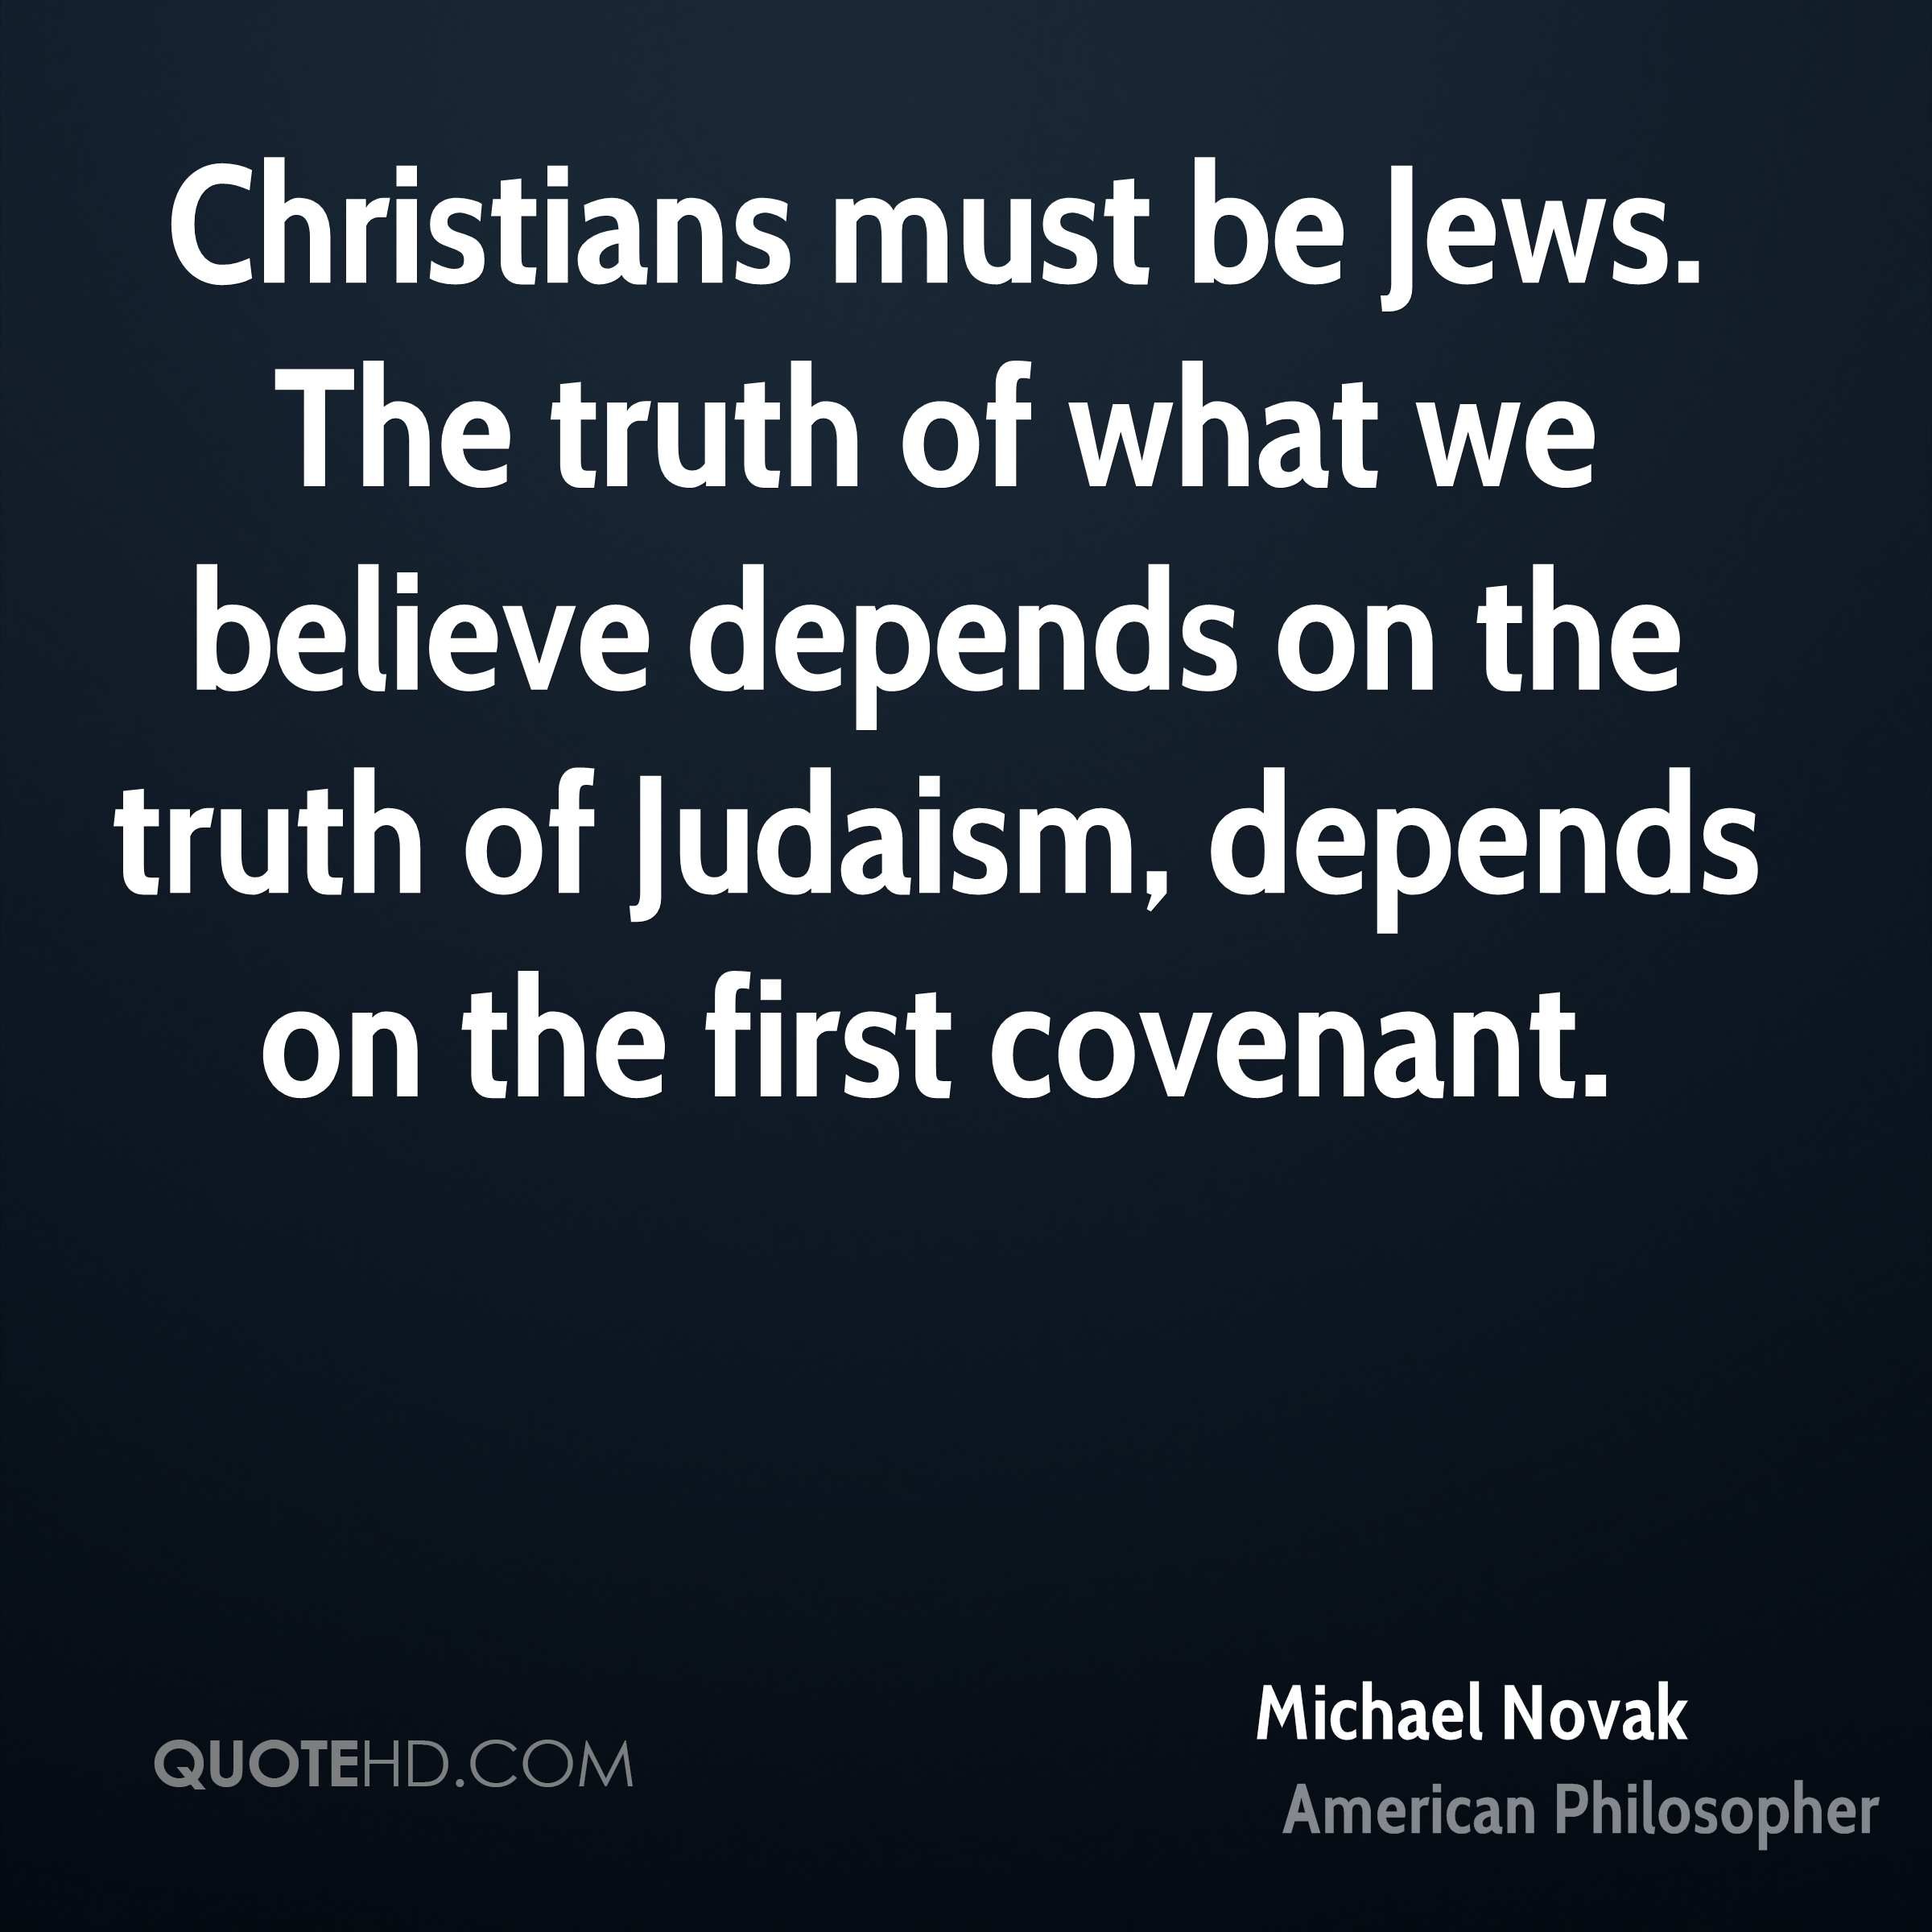 Christians must be Jews. The truth of what we believe depends on the truth of Judaism, depends on the first covenant.